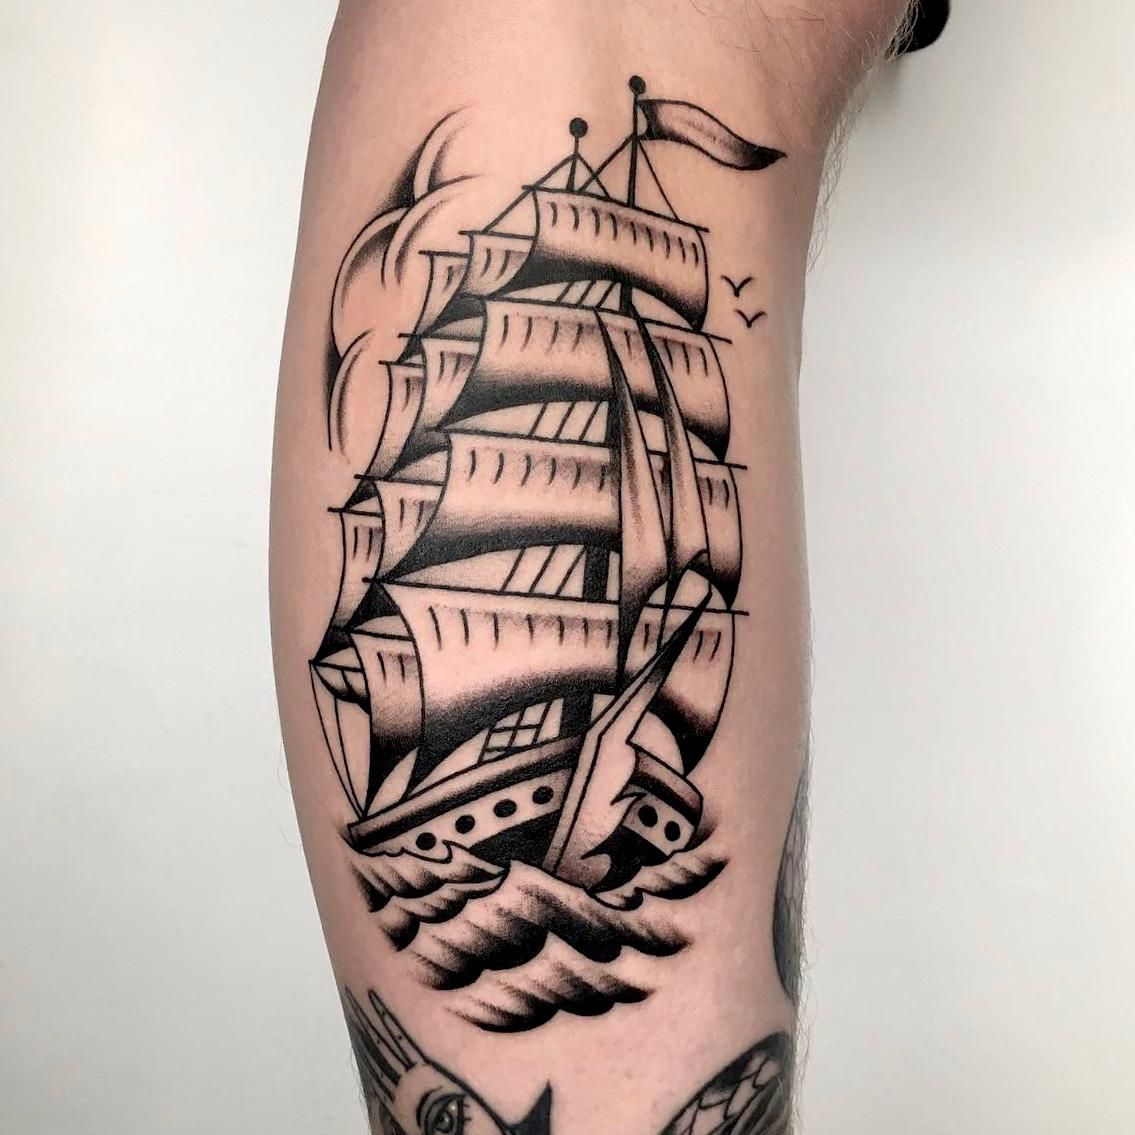 Classic old school clipper ship by best tattoo artist in